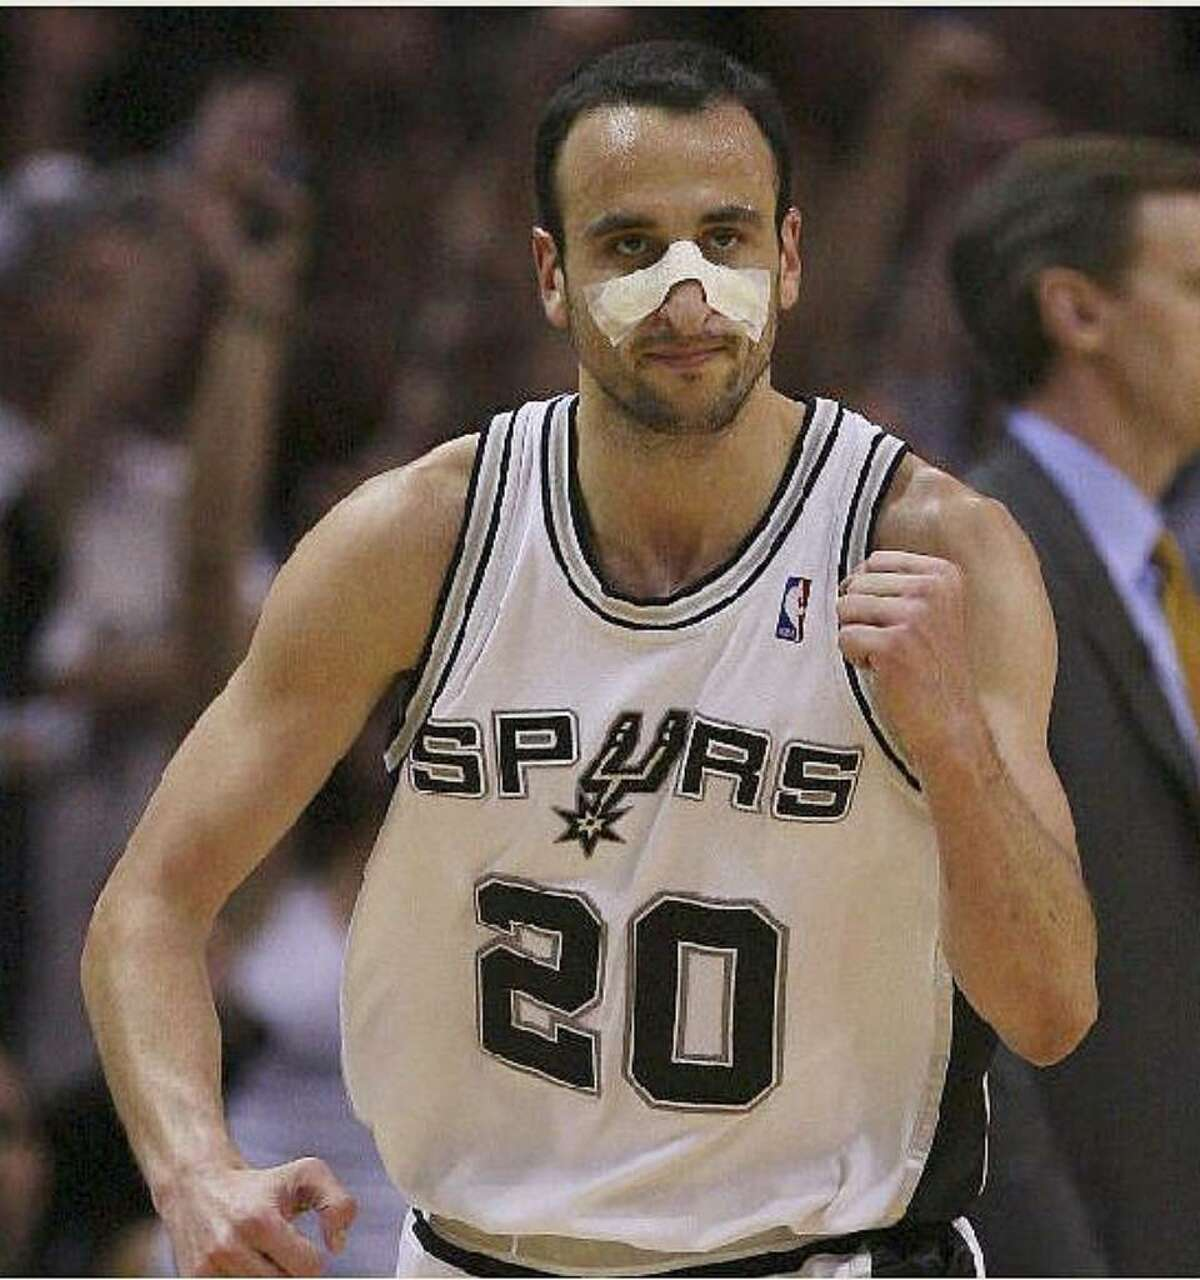 Spurs guard Manu Ginobili reacts after scoring two of his 26 points.